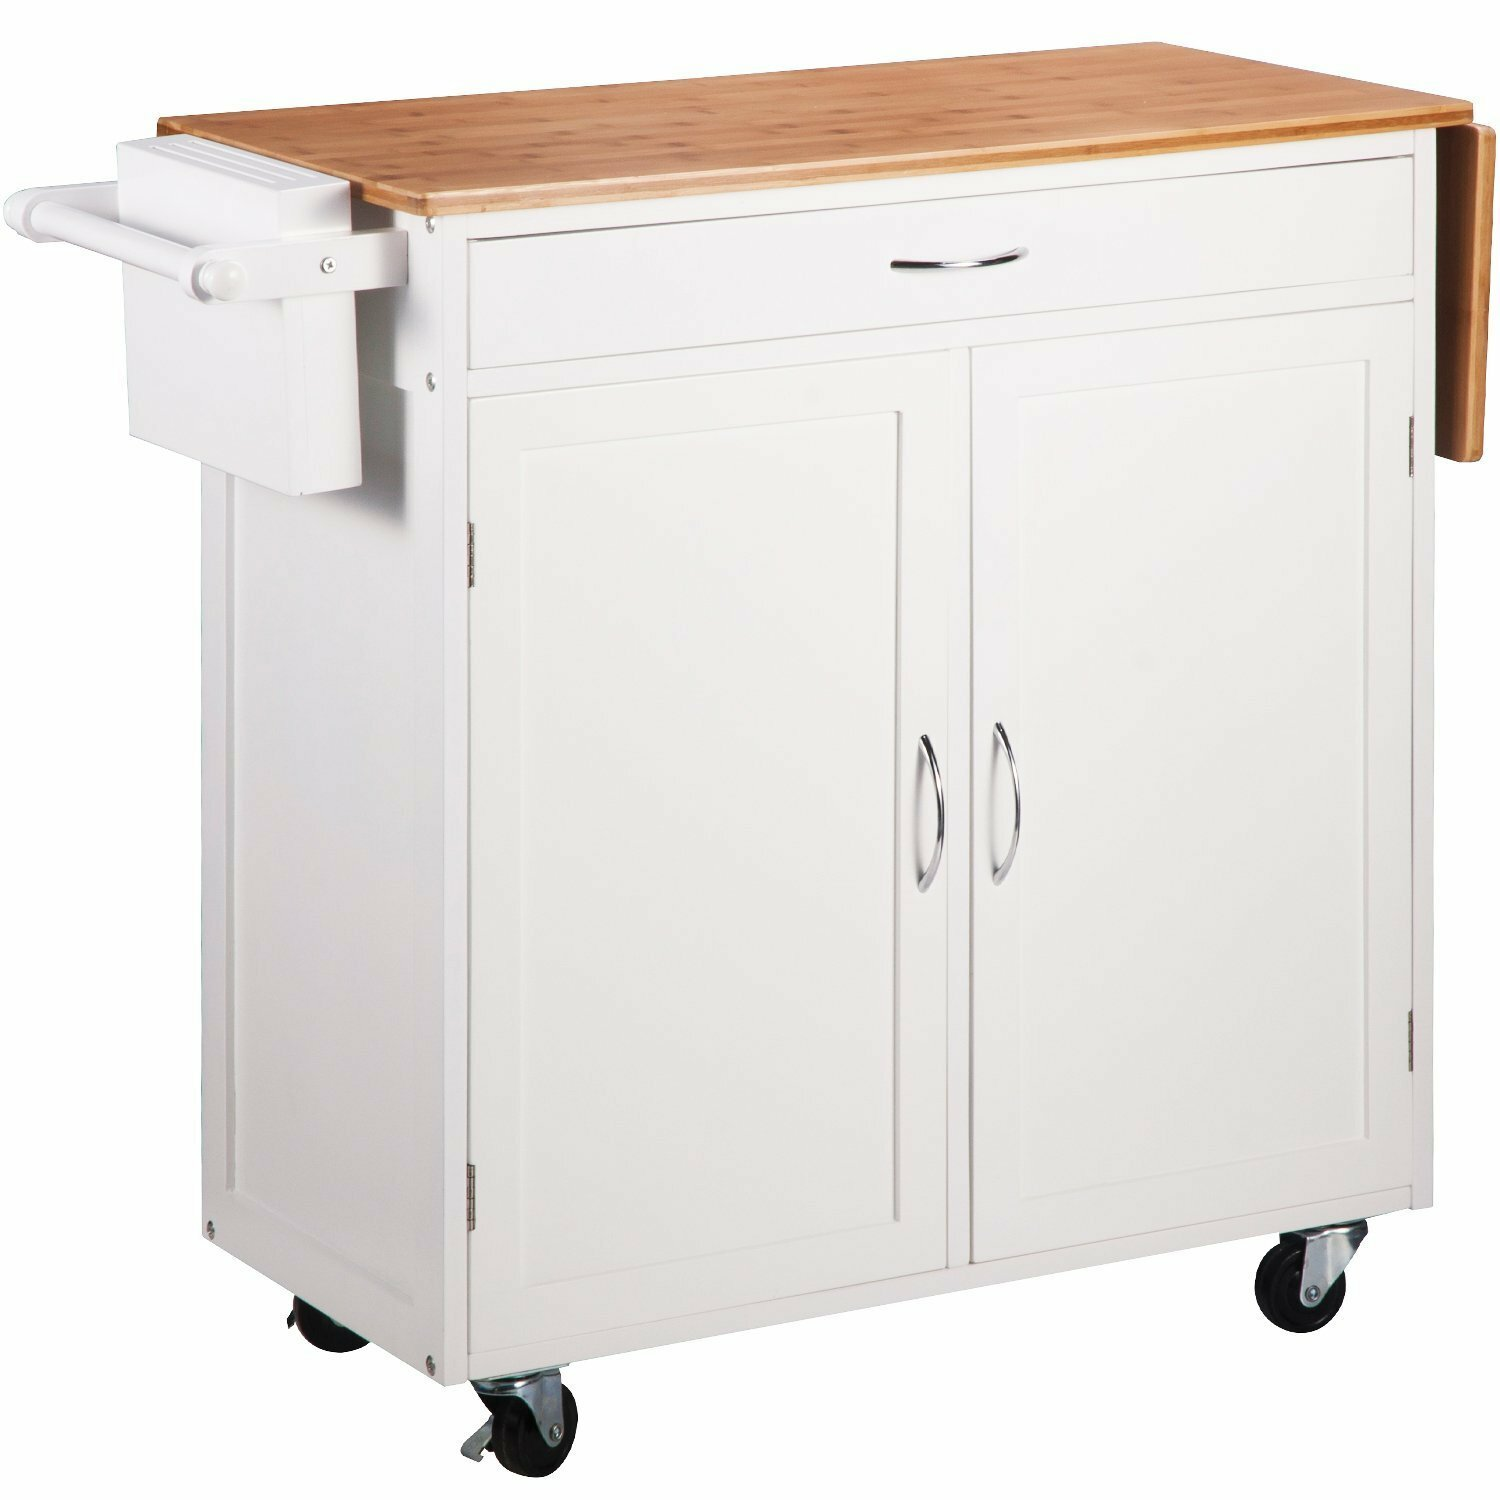 Merax Kitchen Cart Wayfair Ca